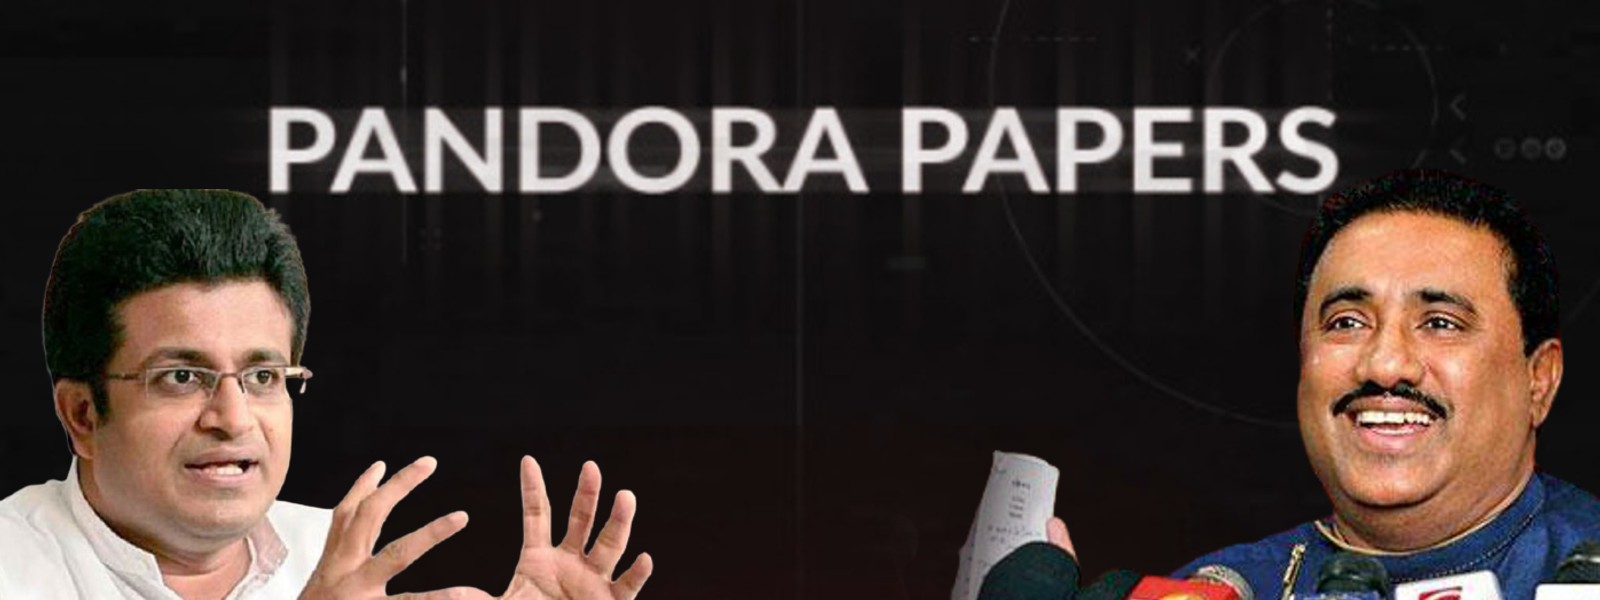 Sri Lanka Govt Ministers scramble to answer Pandora Papers allegations